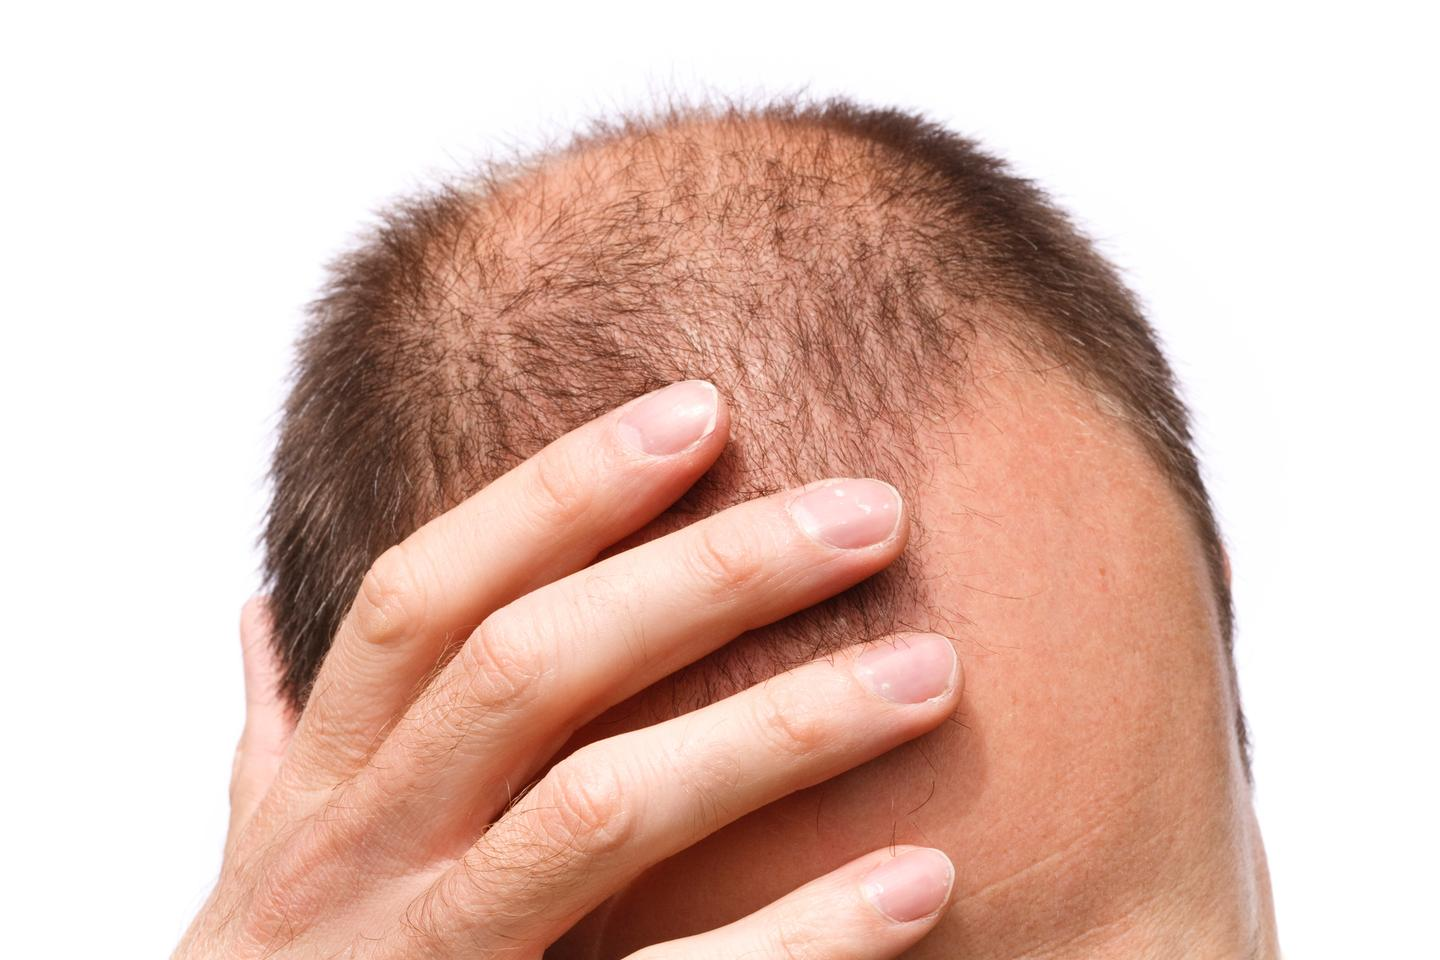 Scientists have uncovered new evidence linking hair loss and stress